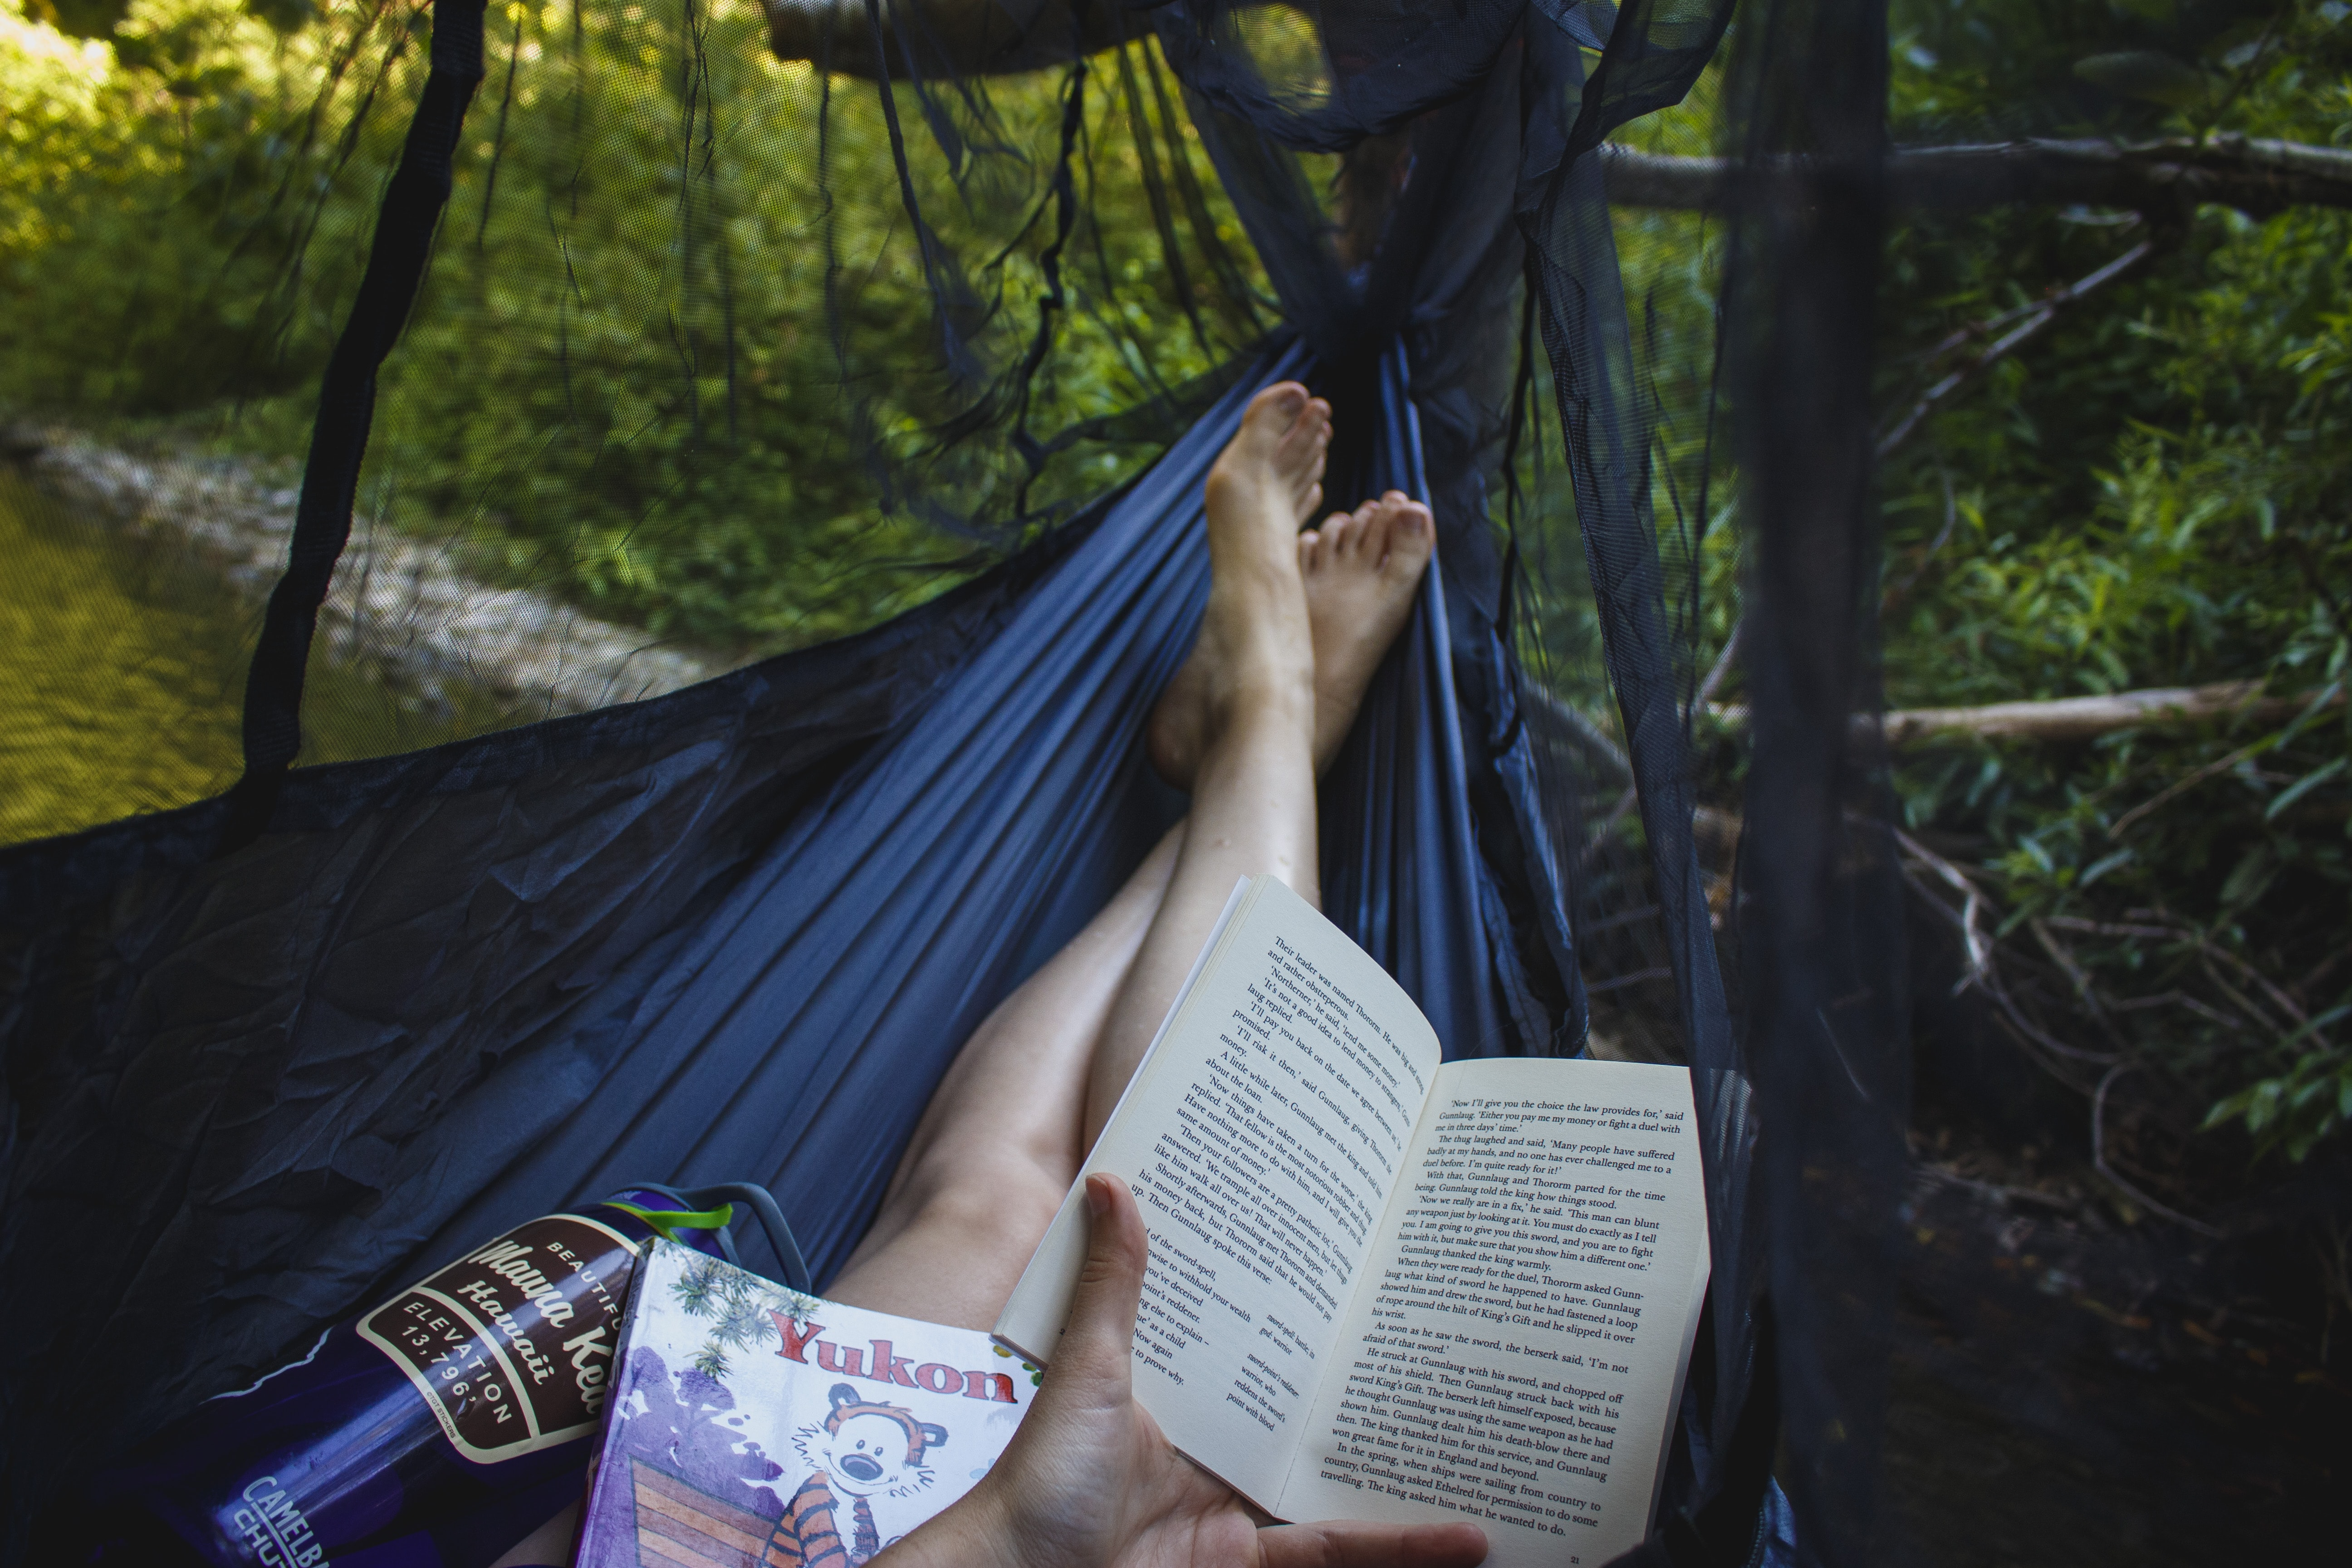 Person relaxing in a hammock reading books and drinking water